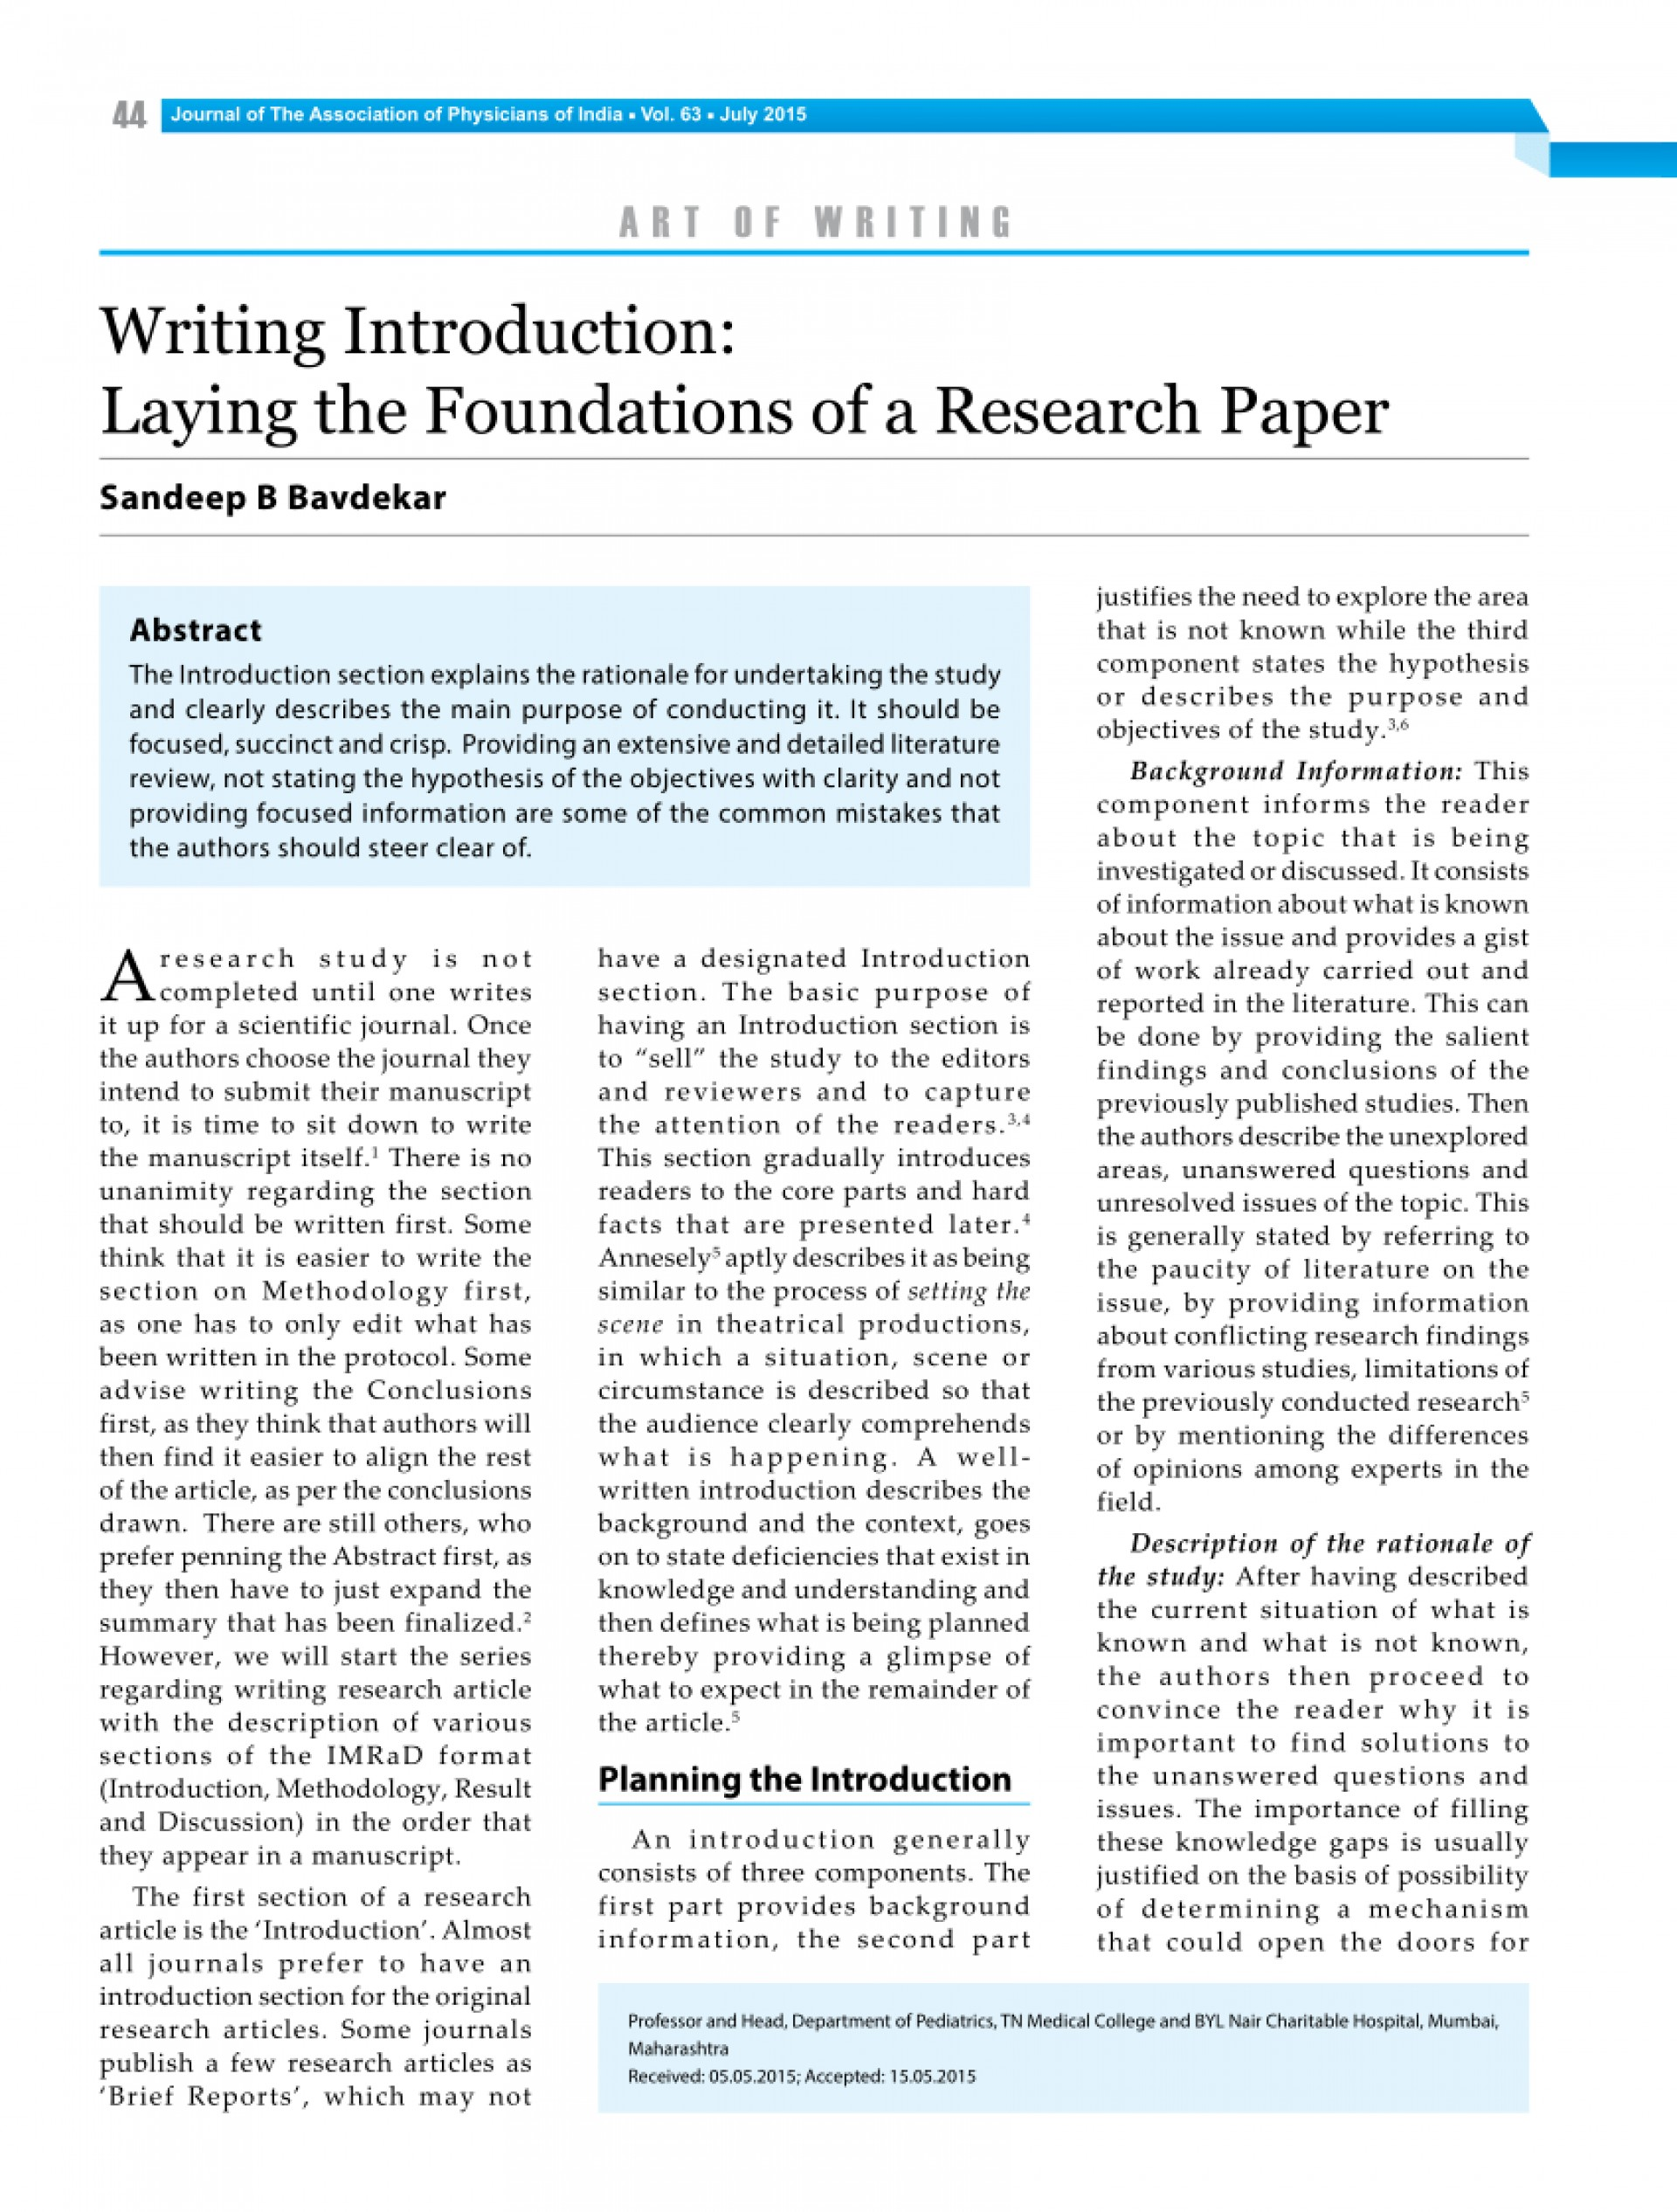 008 Largepreview Writing Research Paper Striking A Introduction Scientific Tips For How To Write An Sample Pdf 1920